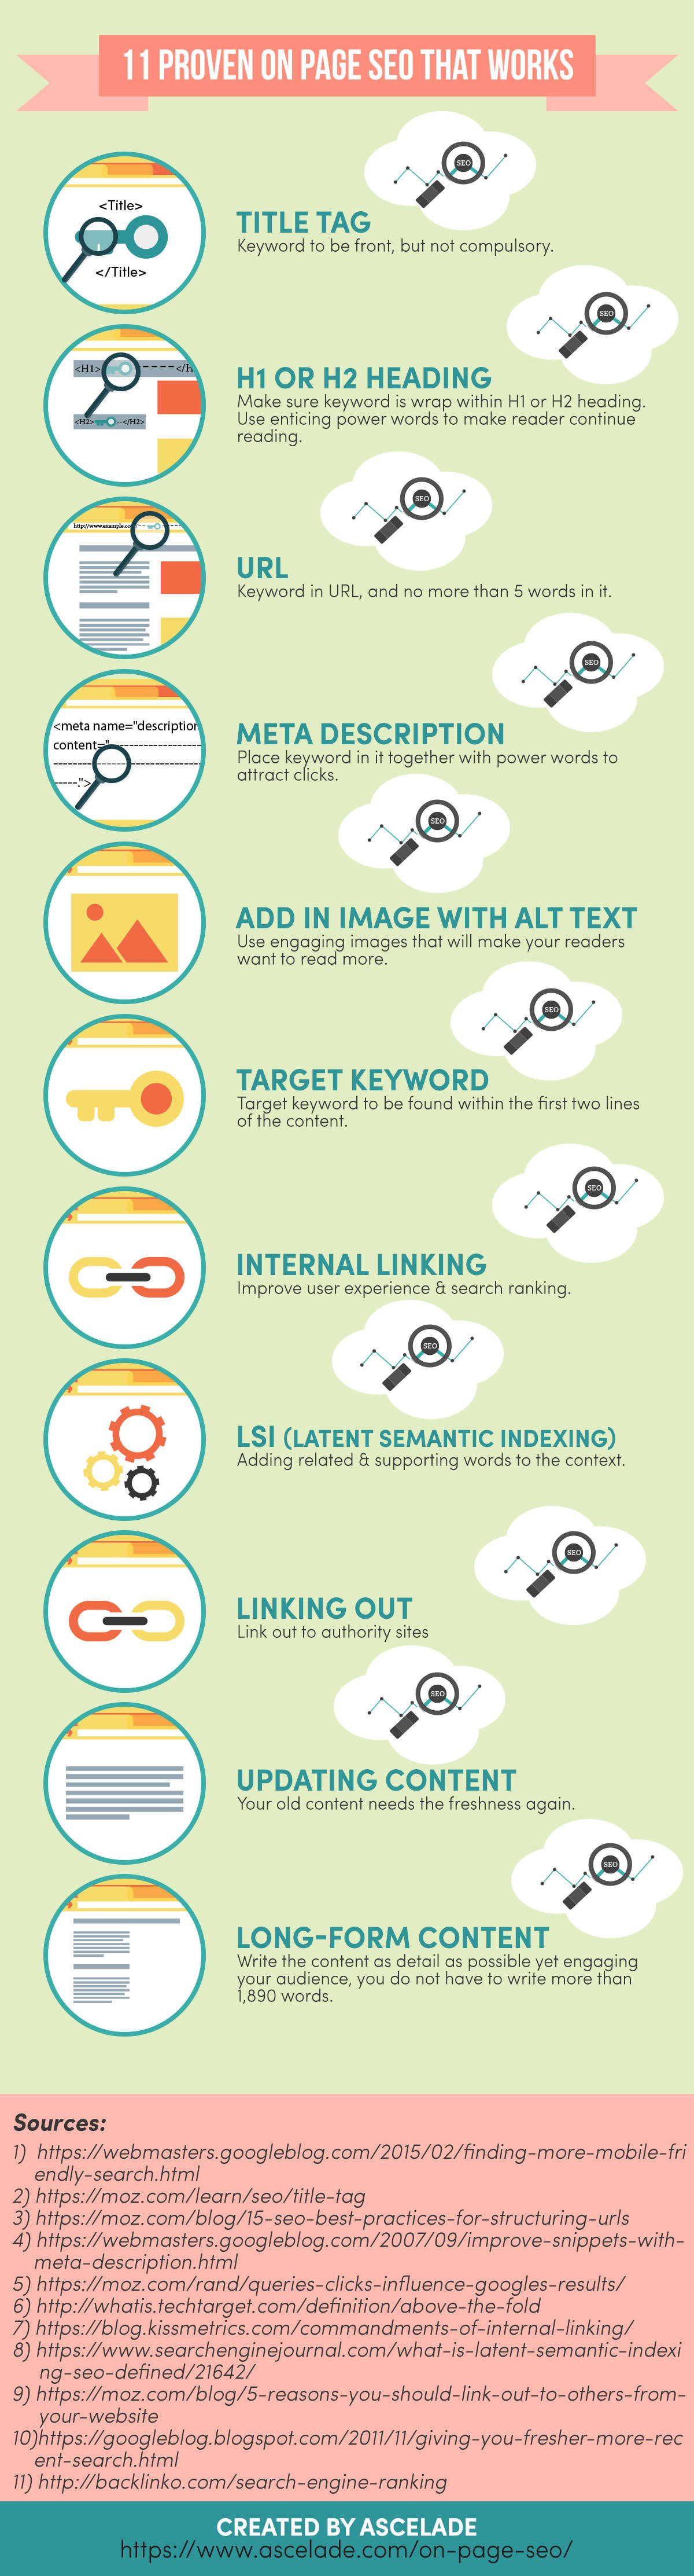 On Page SEO That Works infographic